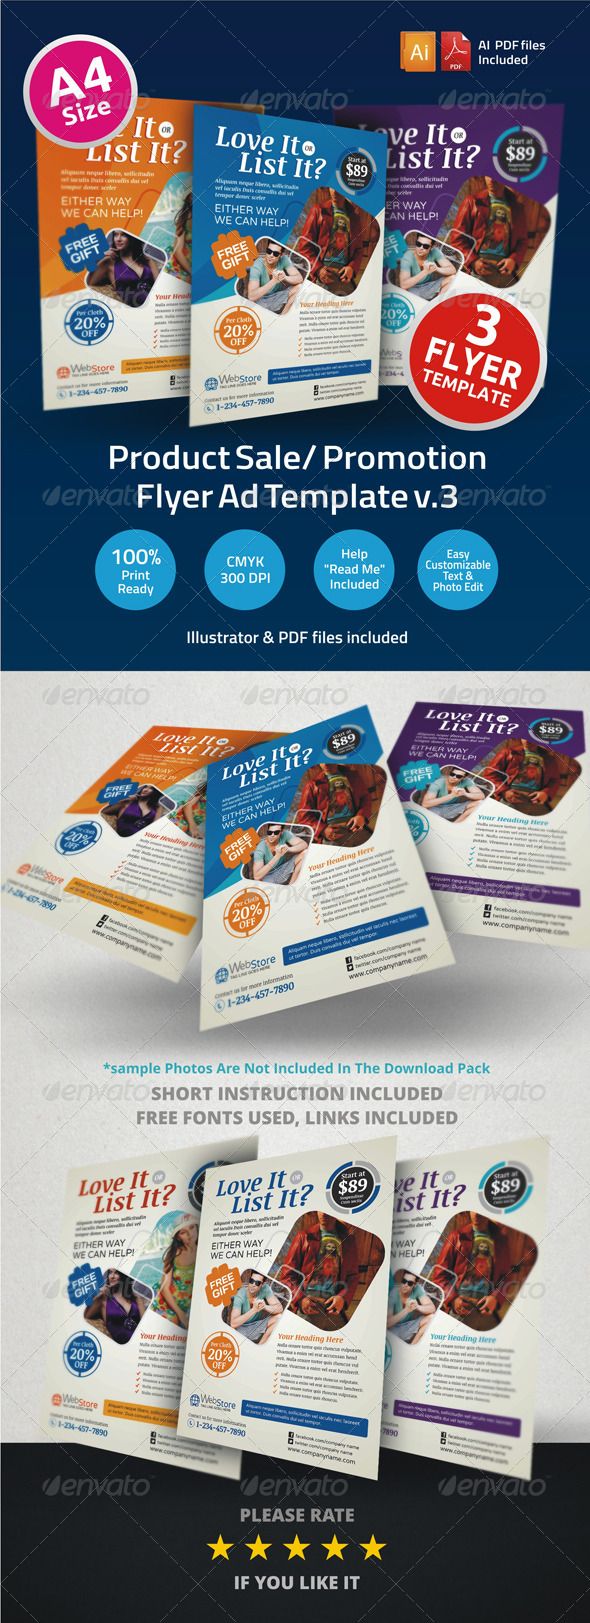 Product Sale Promotion Flyer Ad v3 - Corporate Flyers